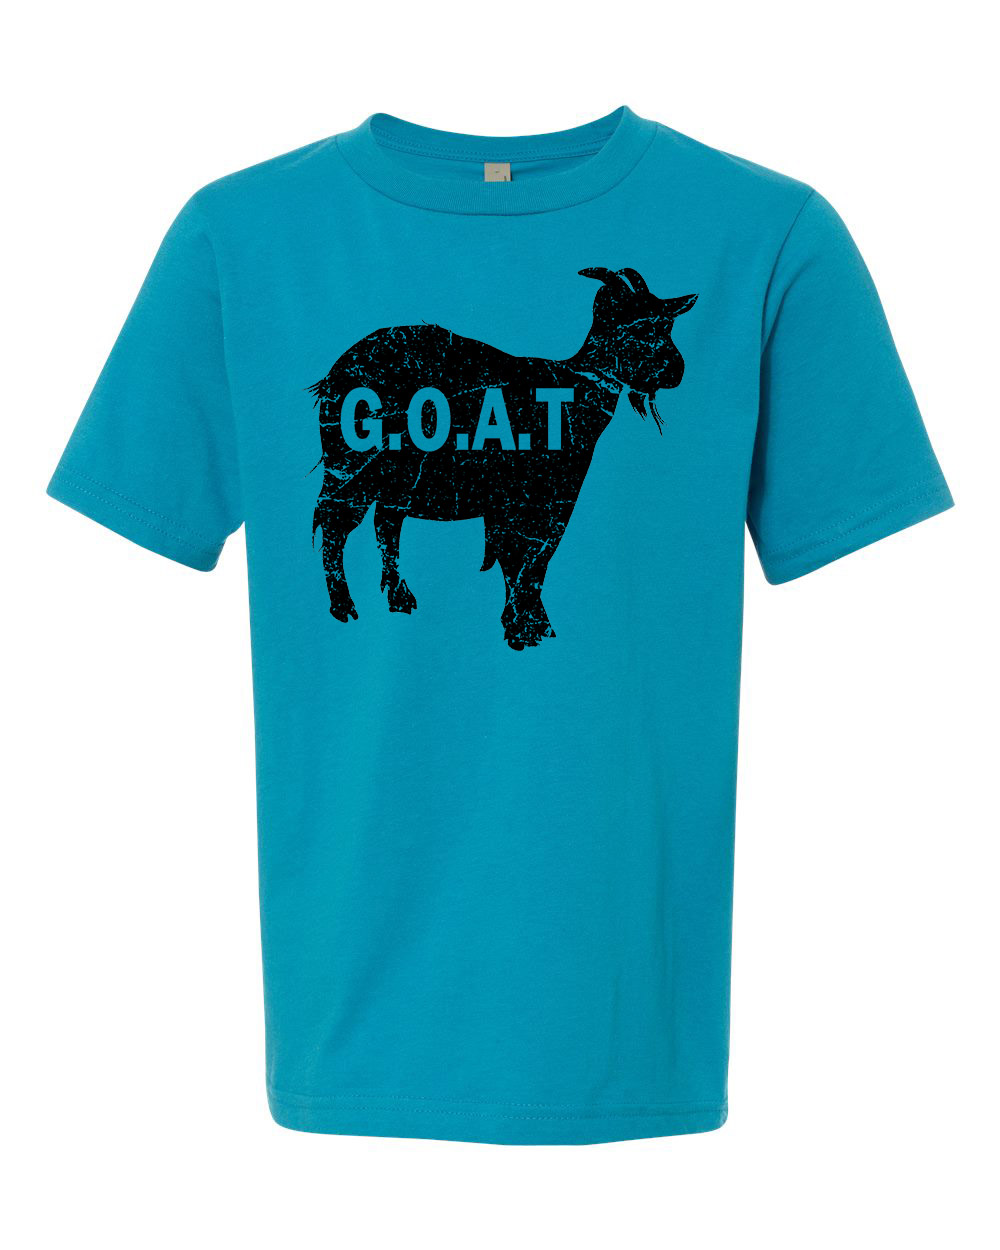 Greatest Of All Times G.O.A.T Youth Short Sleeve T-Shirt